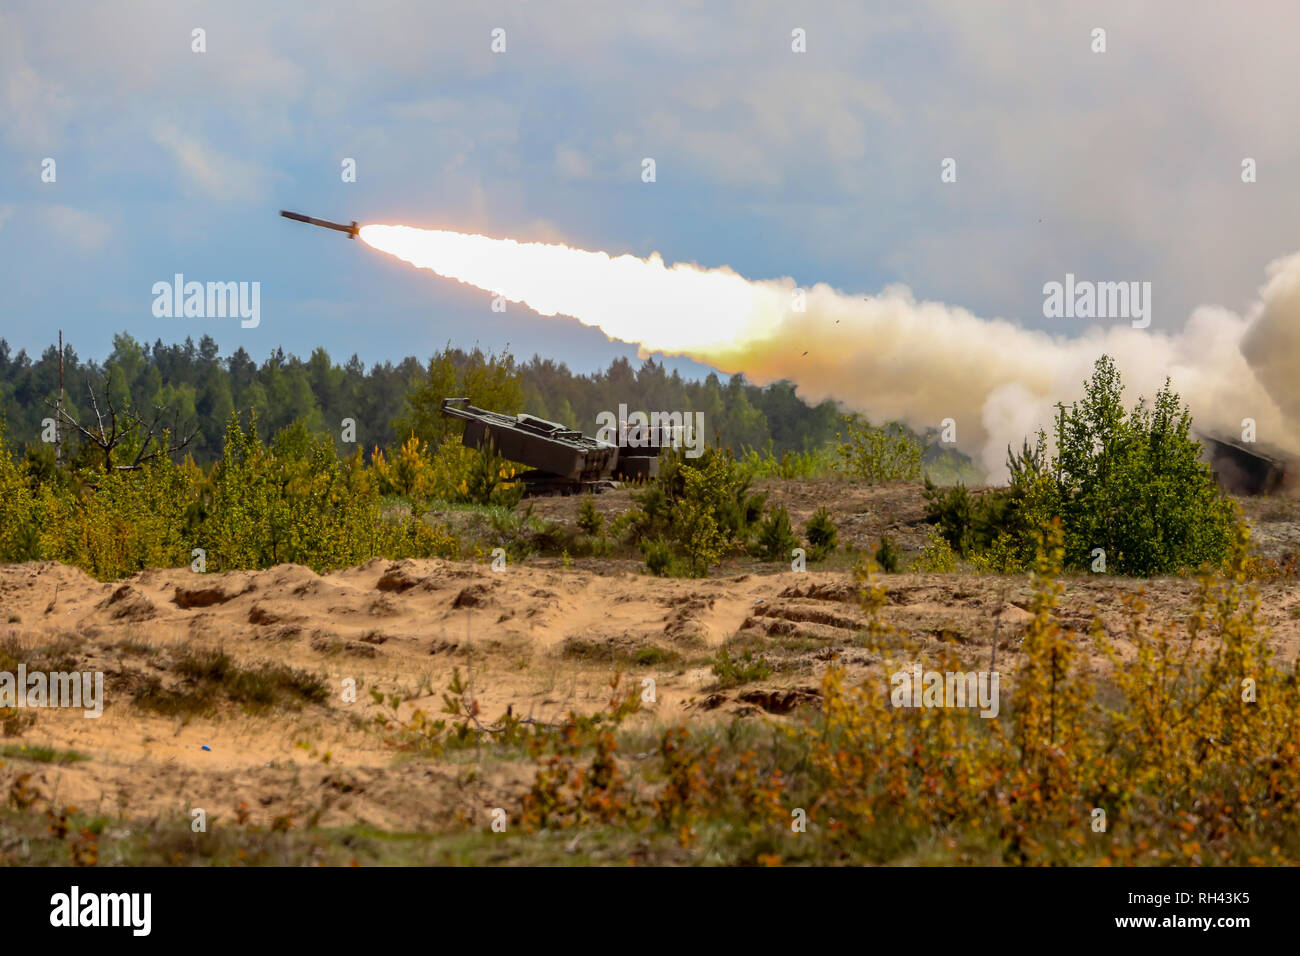 Rocket launcher with Himars. NATO soldiers and military equipment in Latvia. International Military Training 'Saber Strike 2017', Adazi, Latvia, from  - Stock Image